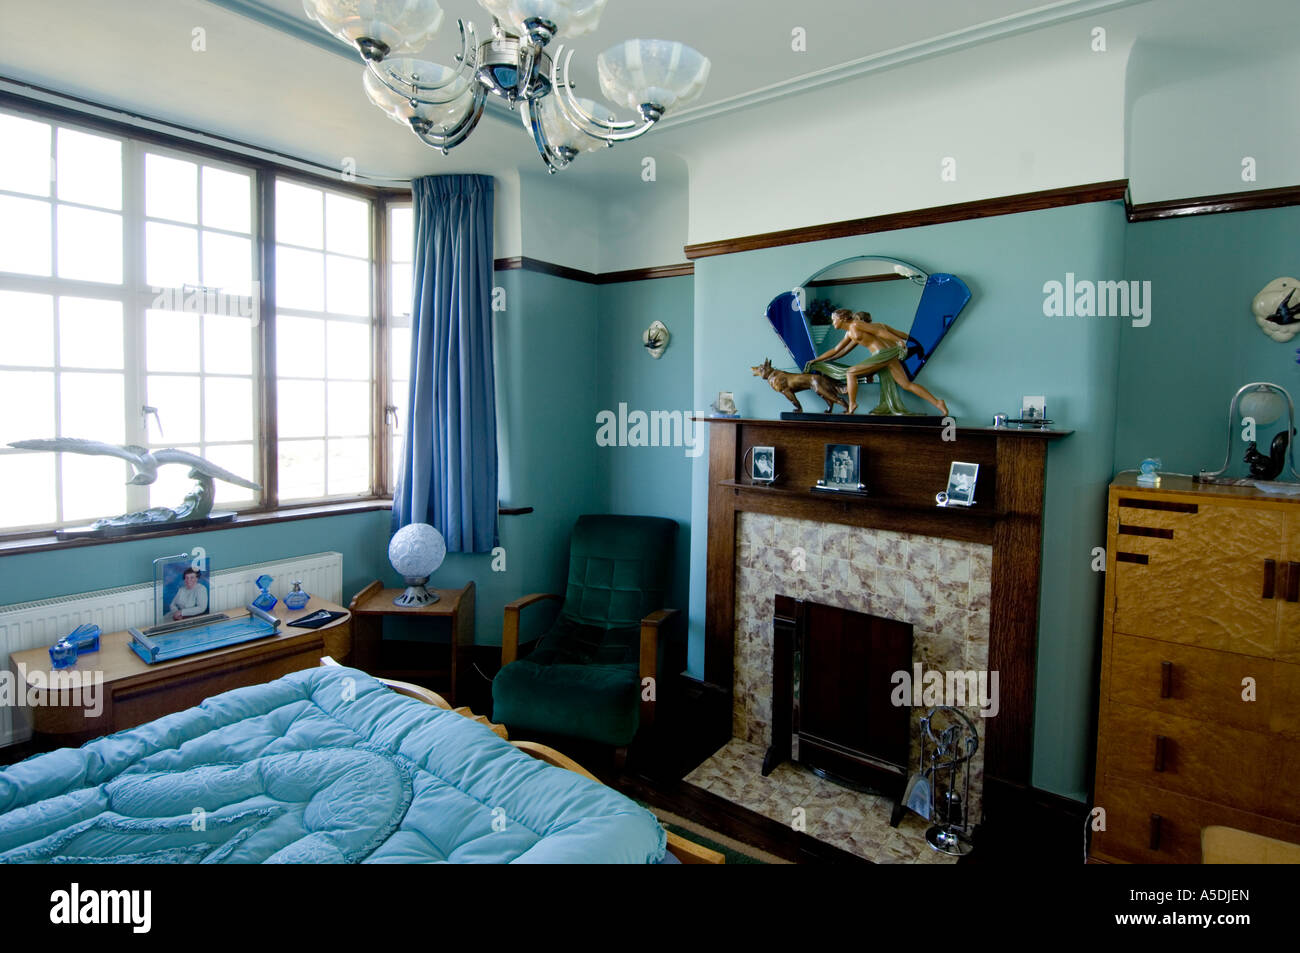 Art Deco Style Bedroom Refurbished Art Deco Art Nouveau 1930 S House Interior